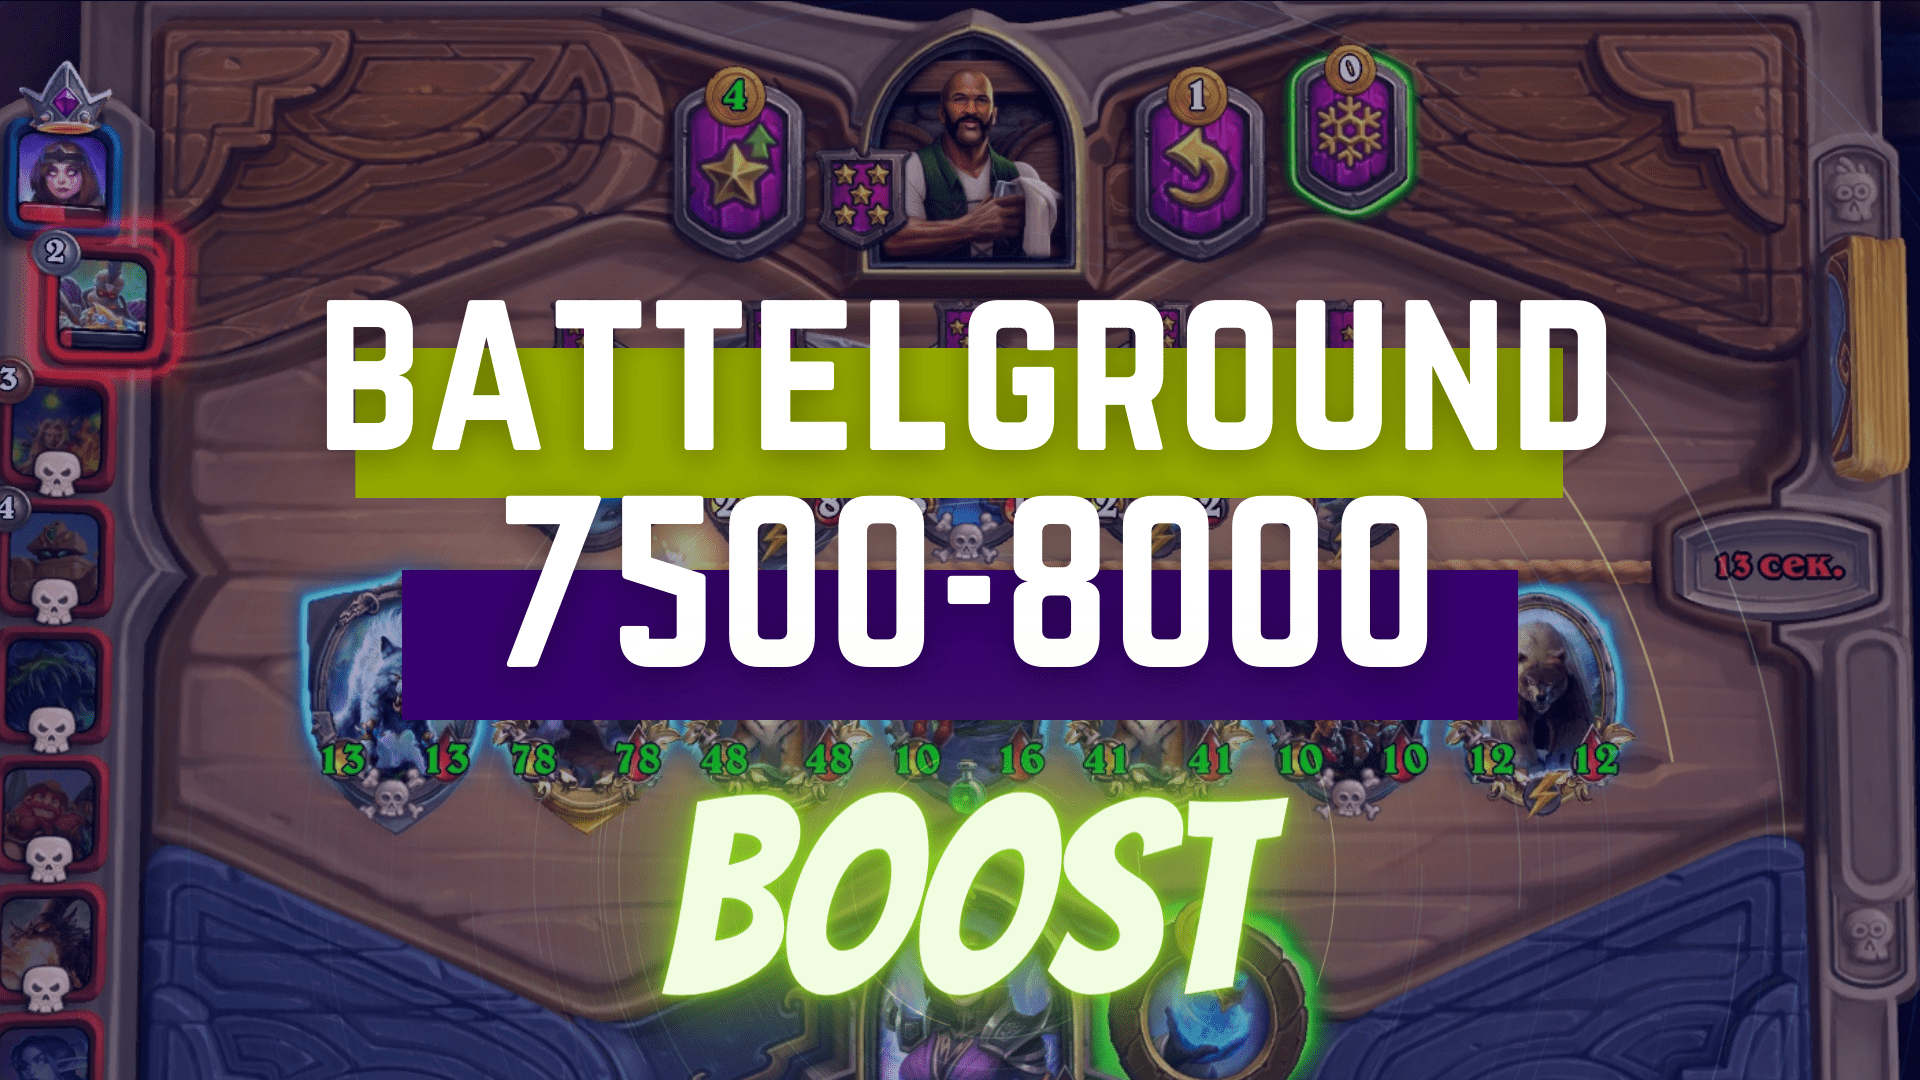 [BATTLEGROUNDS RATING] BOOST FROM 7500 TO 8000 GBD - e2p.com